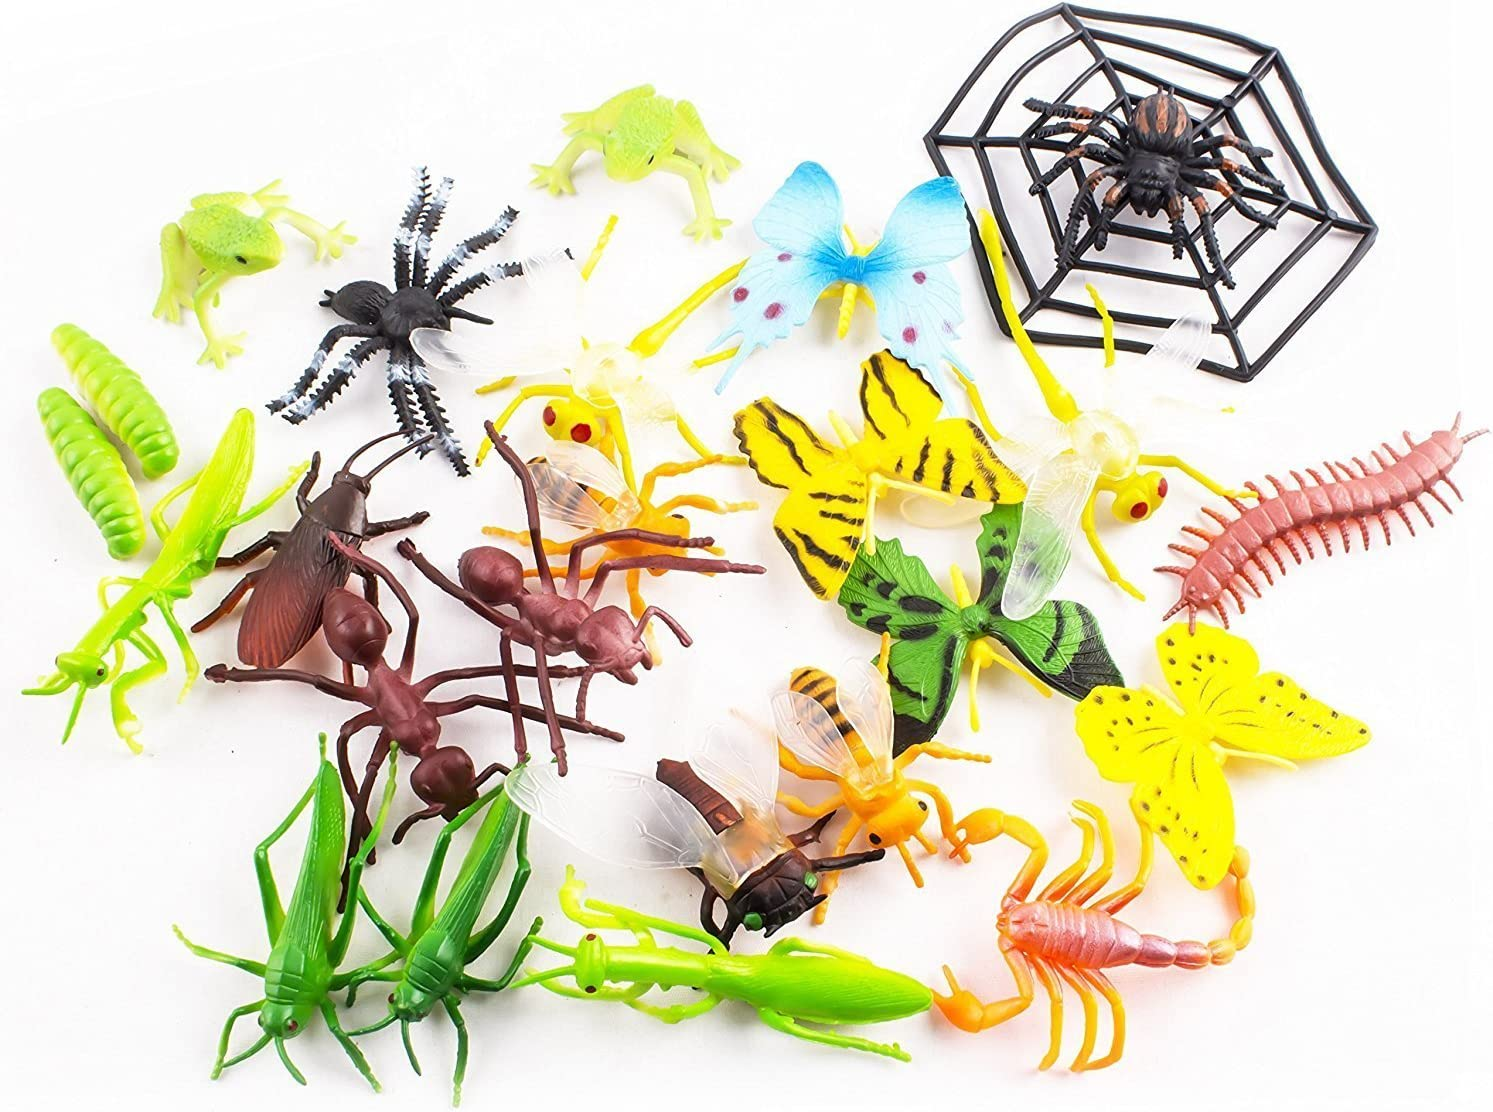 22x Mini Plastic Insects Bugs Butterflies Frogs Caterpillar Spiders Educational